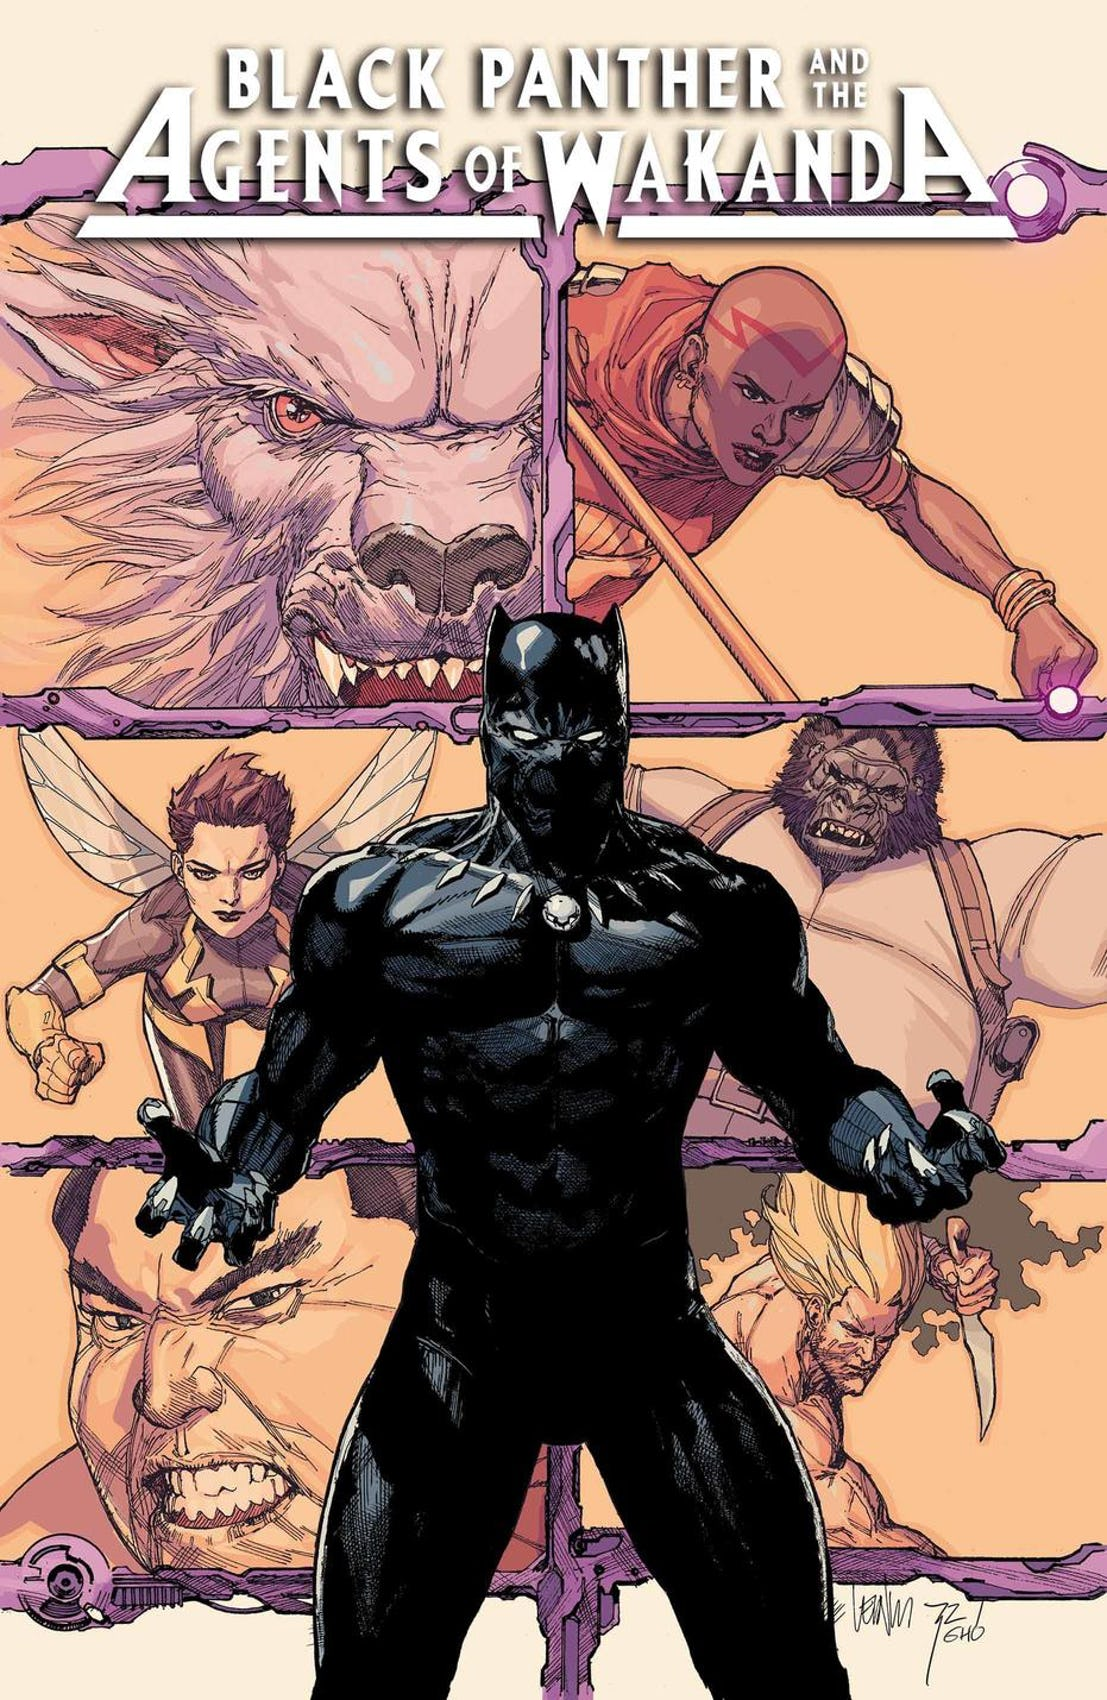 black-panther-agents-of-wakanda-variant-cover.jpg